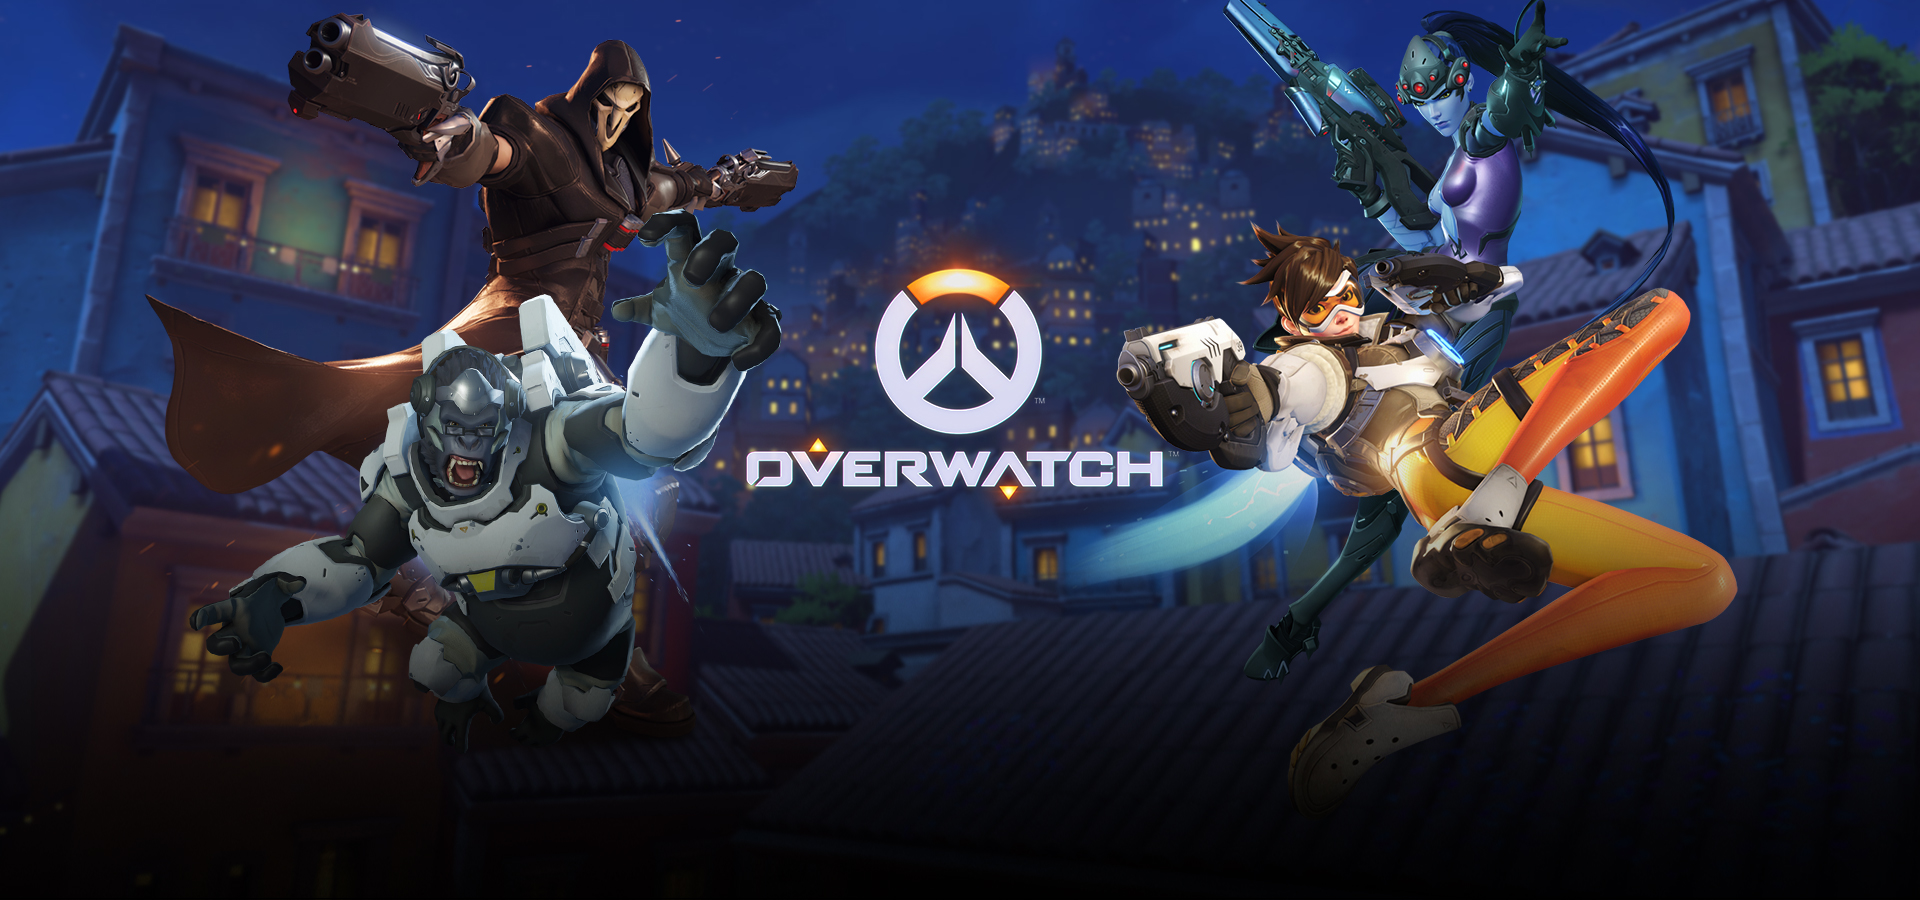 Blizzard confirms Overwatch will run at 4K on Xbox One X